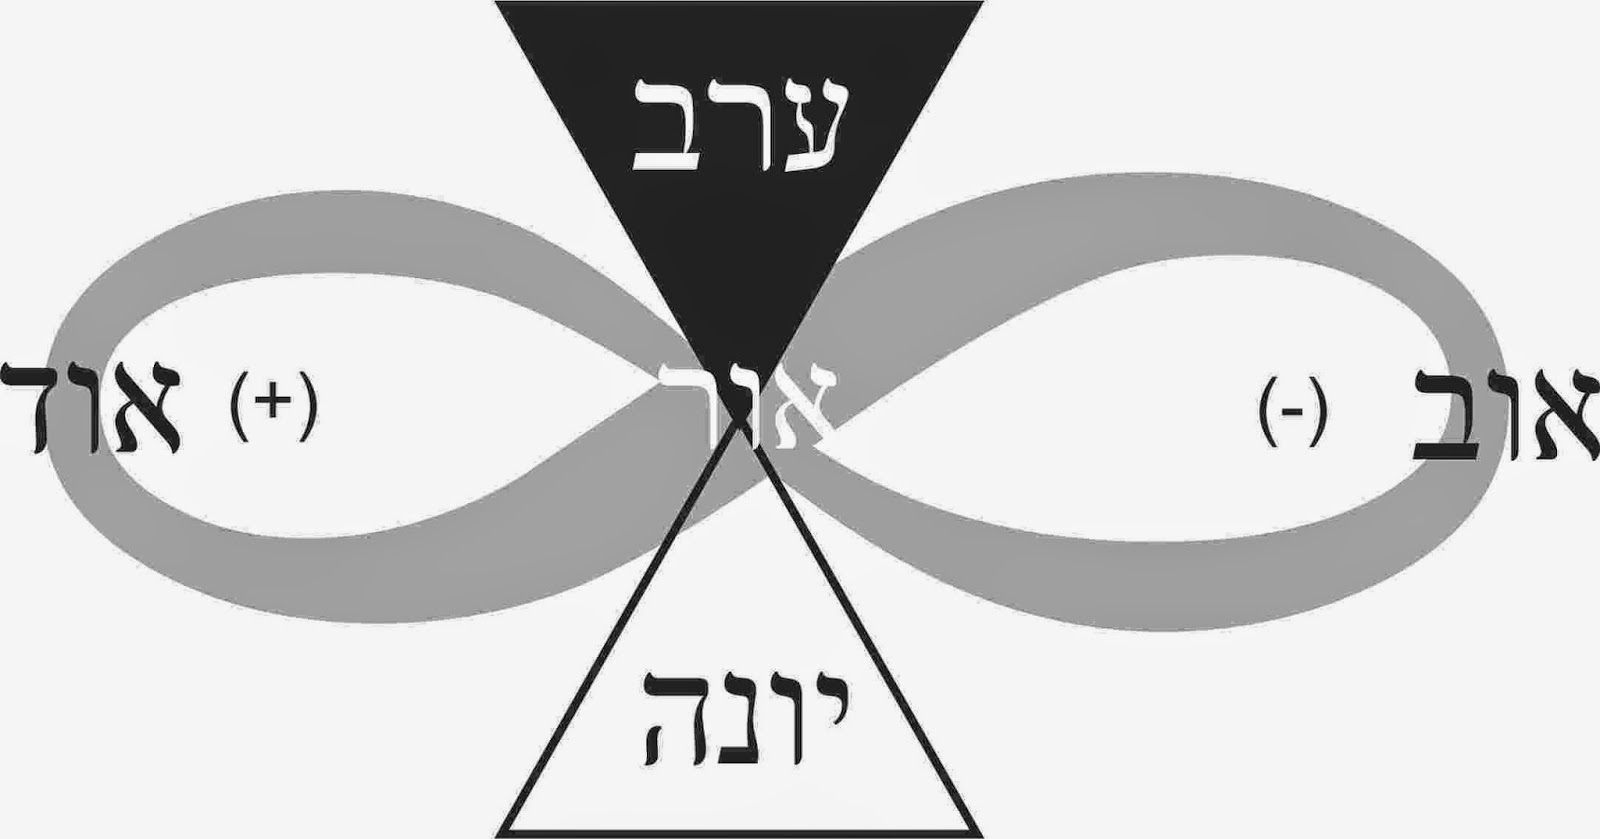 Key To The Key Of Solomon Symbol Of Astral Forces Balance